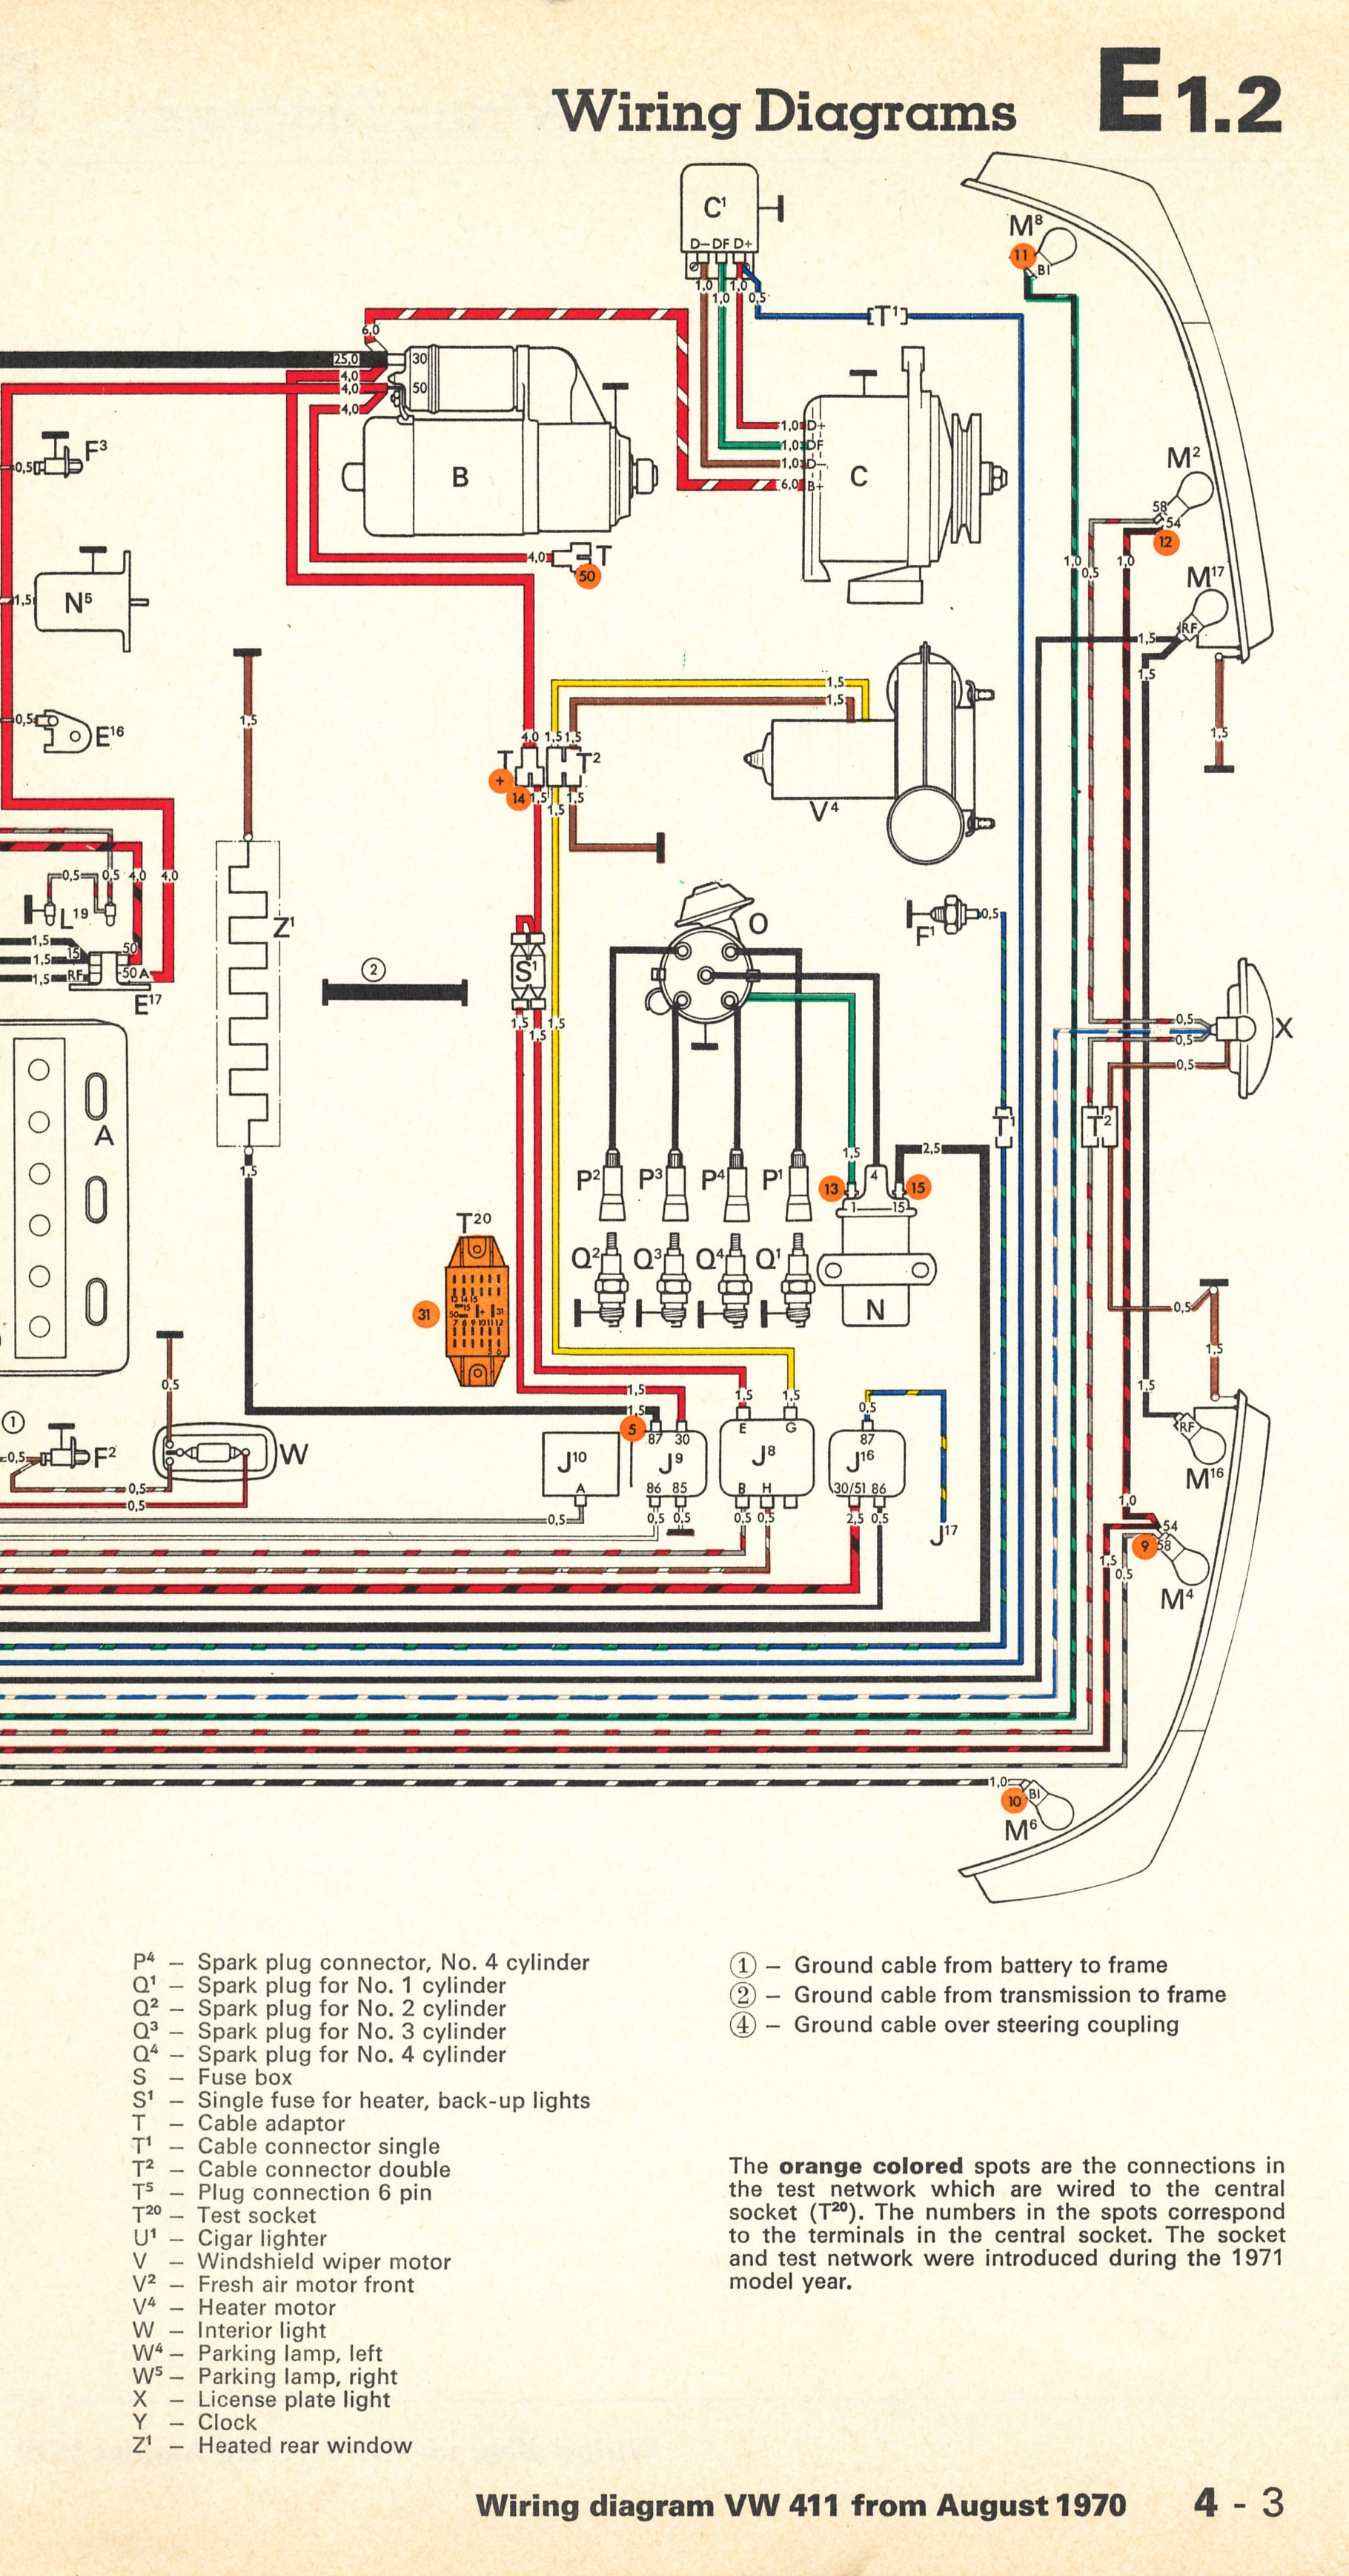 411_1971b wiring diagram vw up explore wiring diagram on the net \u2022